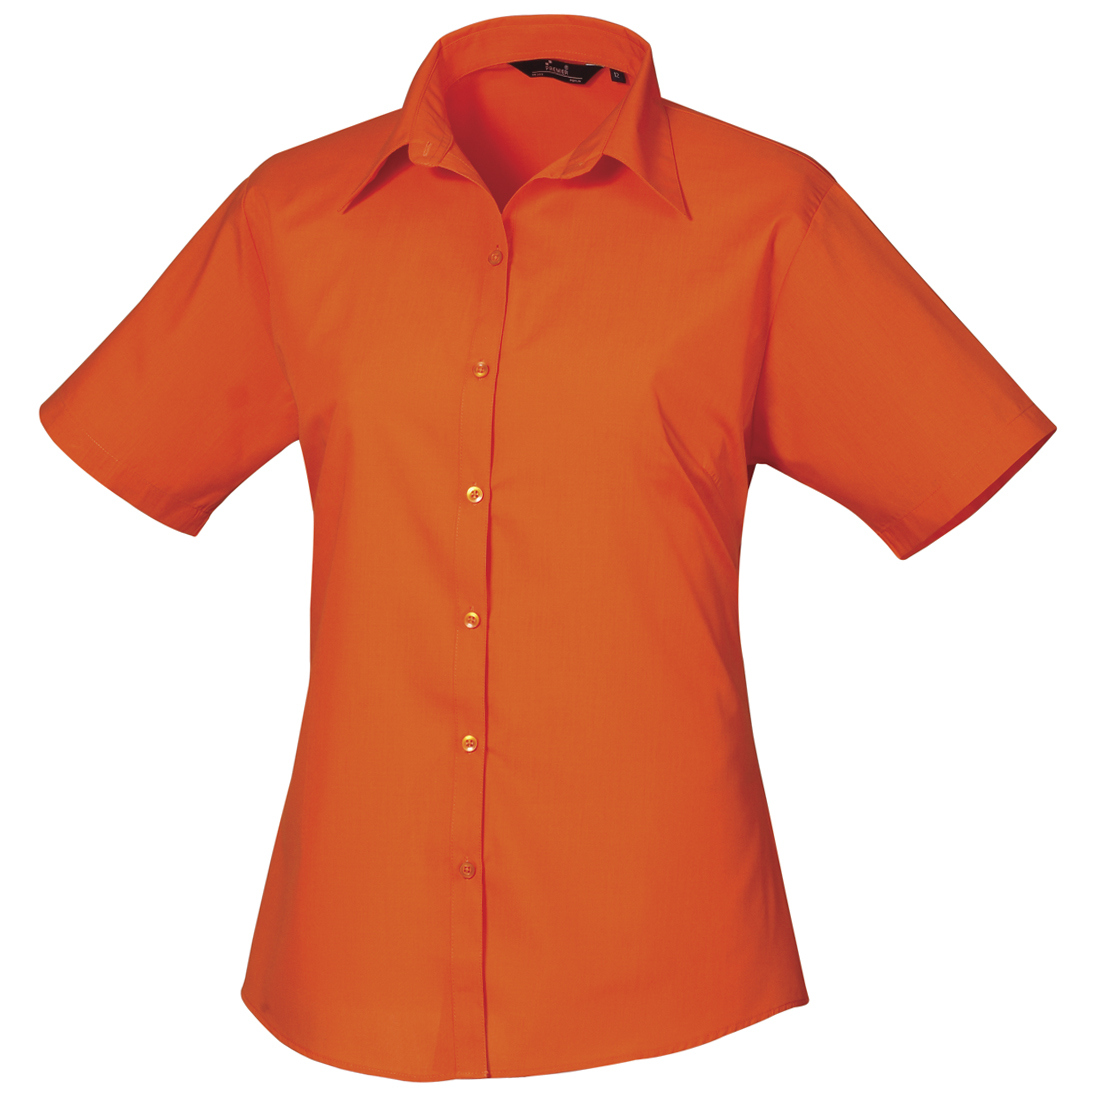 Premier Short Sleeve Poplin Blouse / Plain Work Shirt (12) (Burgundy)